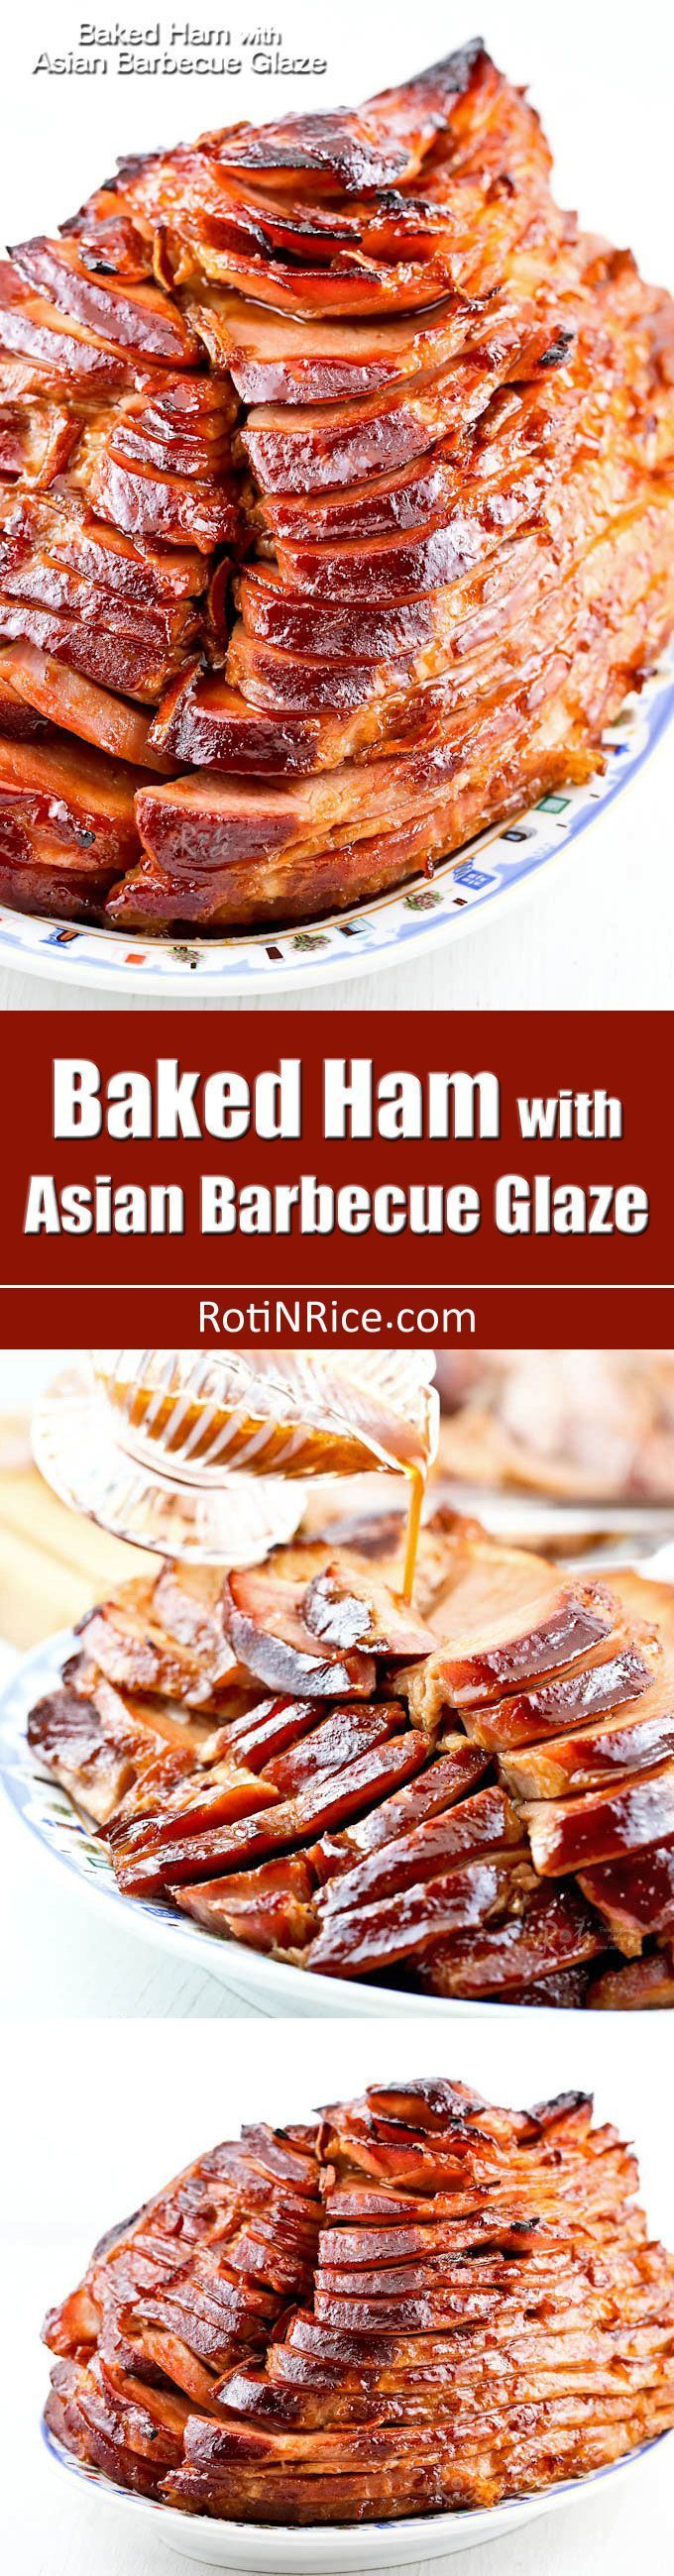 Baked Ham with Asian Barbecue Glaze made of hoisin sauce and dried clementine peel. Beautifully caramelized and perfect for any occasion. | http://RotiNRice.com